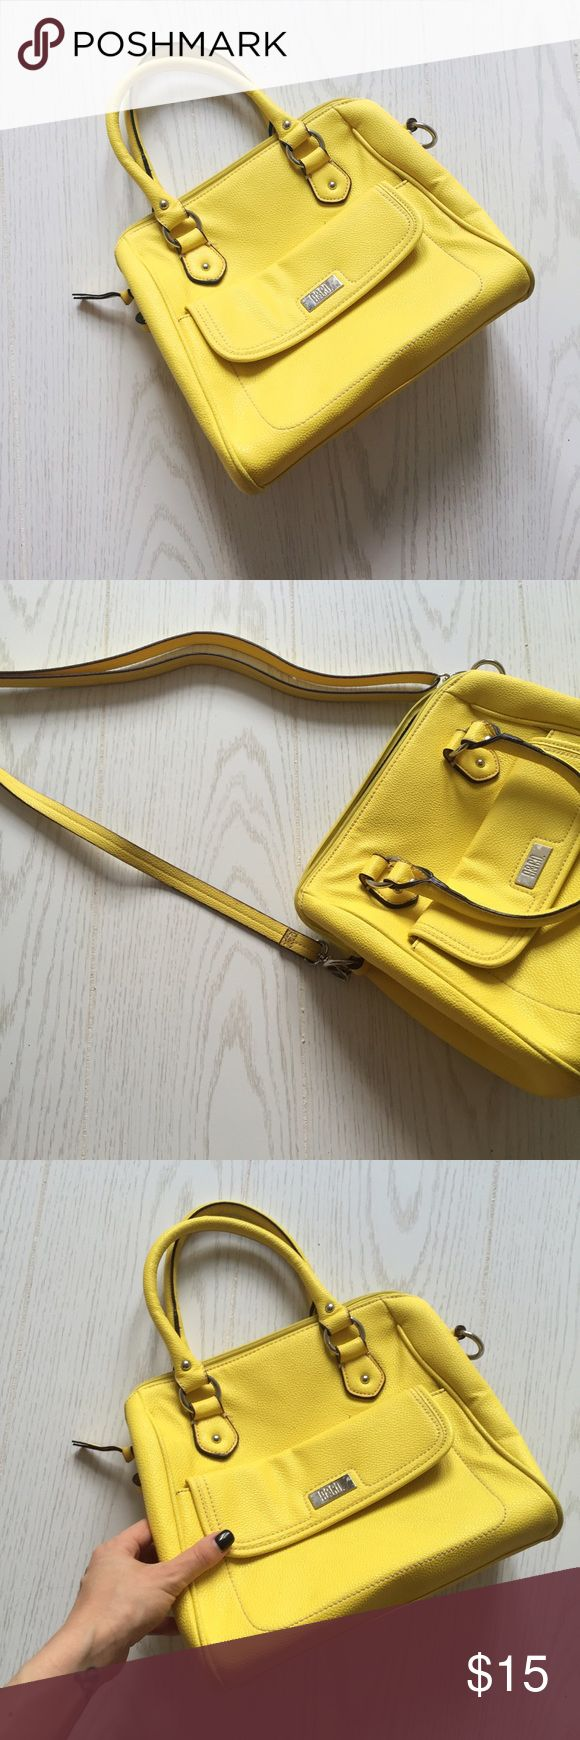 neon yellow purse neon yellow handbag with removable strap to wear as a crossbody. light dye transfer on back of the purse in a couple of spots as seen in picture. this bag has some wear, but has a lot of life left. price reflects wear. jcpenney Bags Crossbody Bags